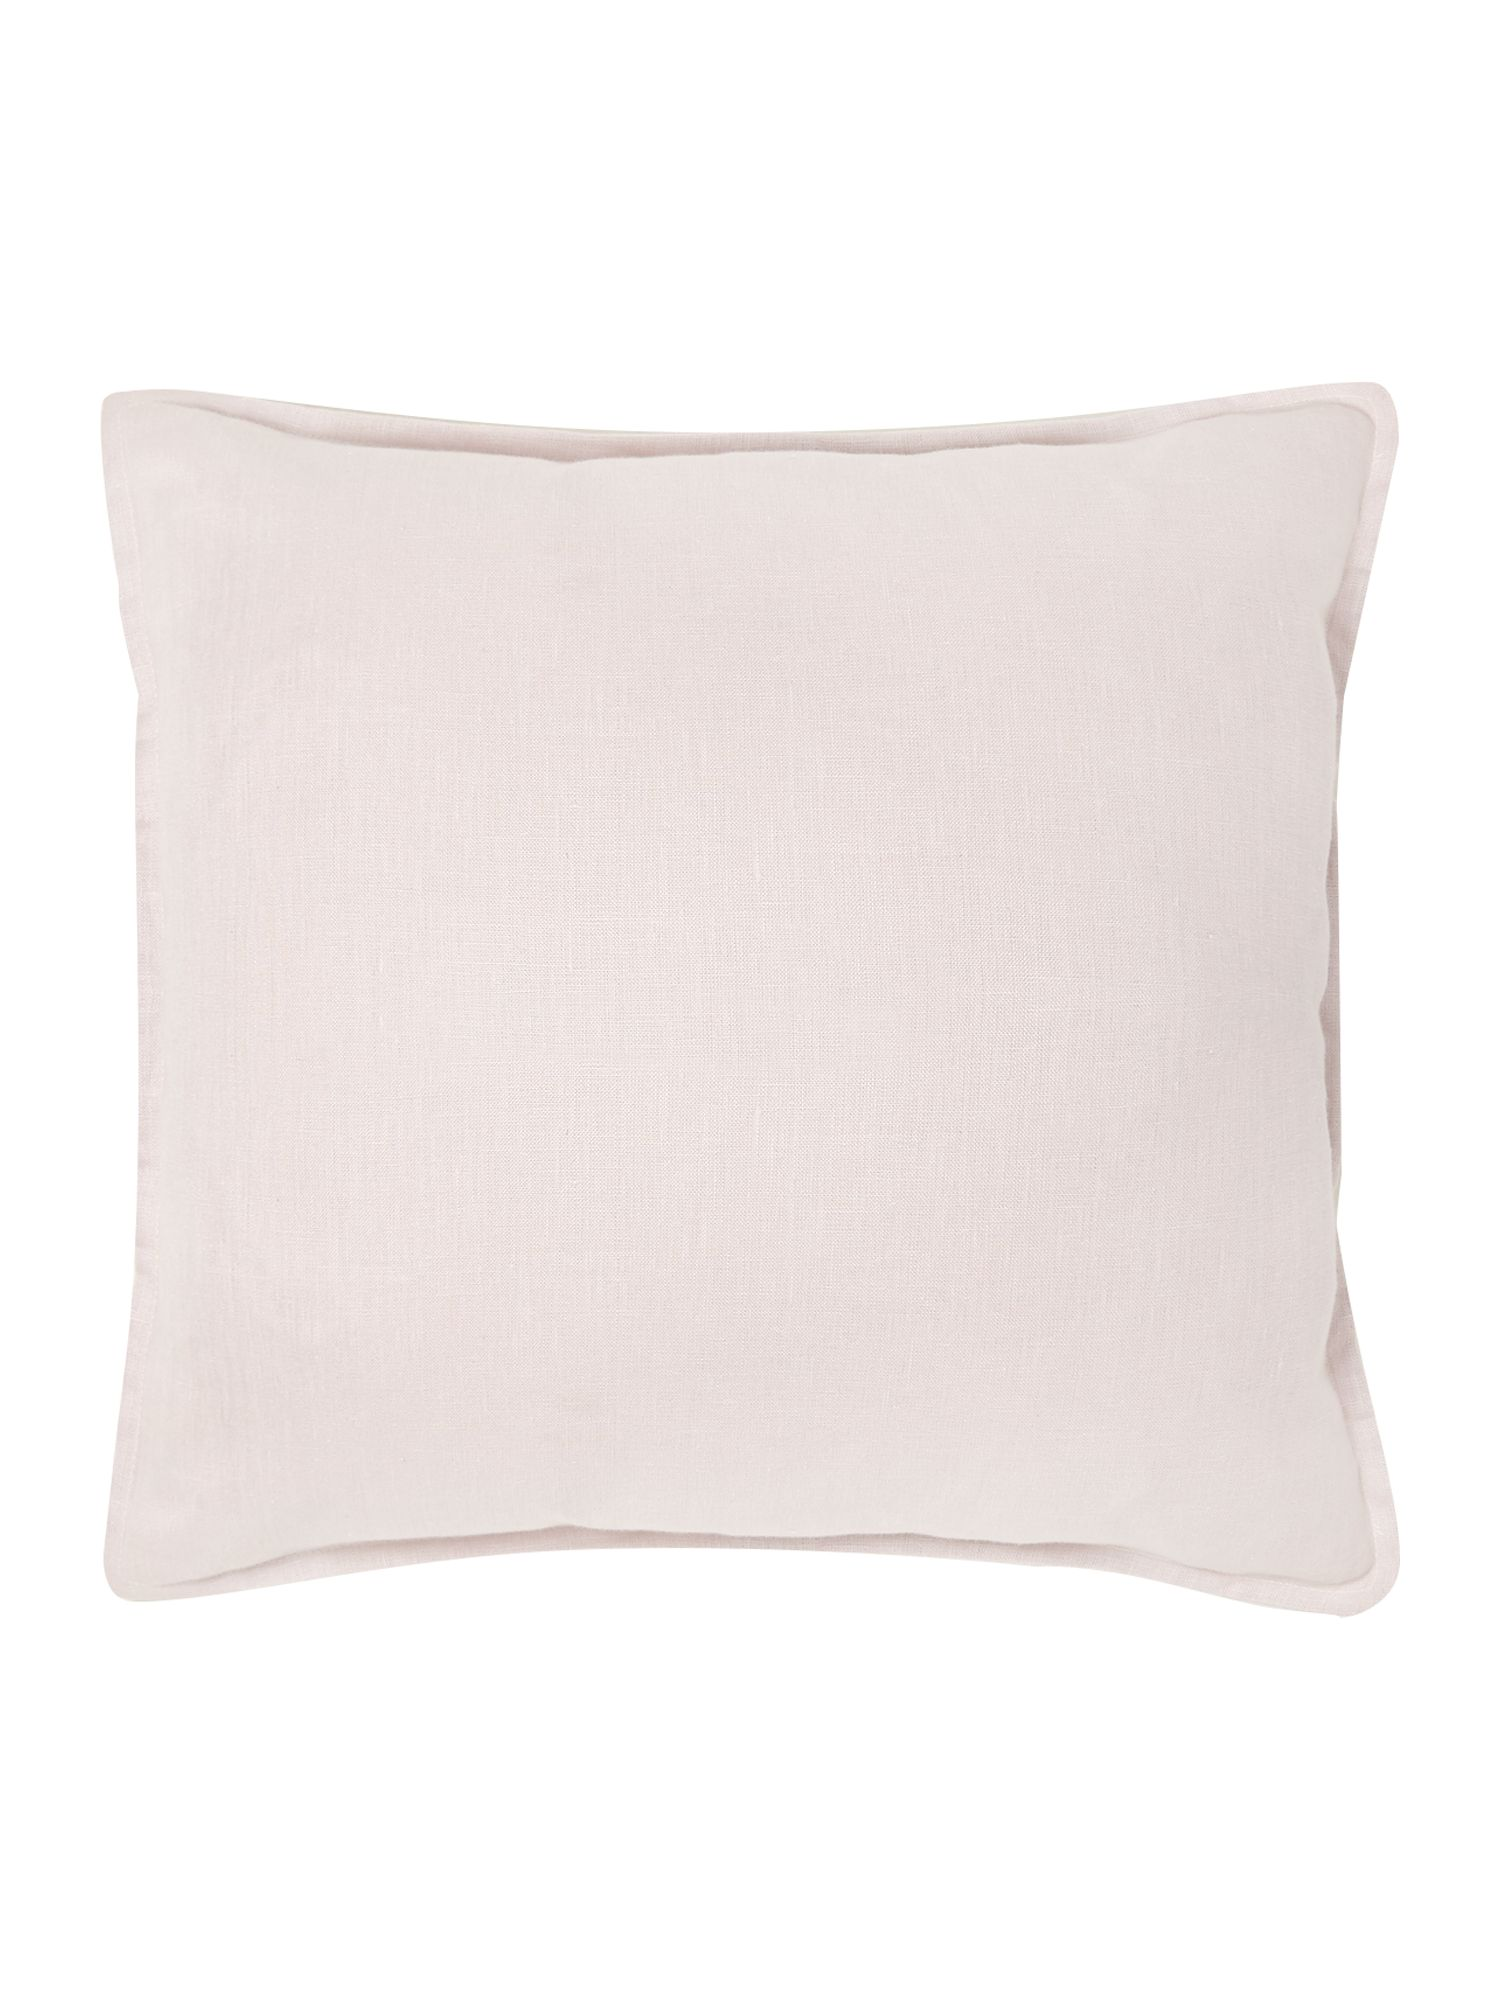 French print linen cushion, pink